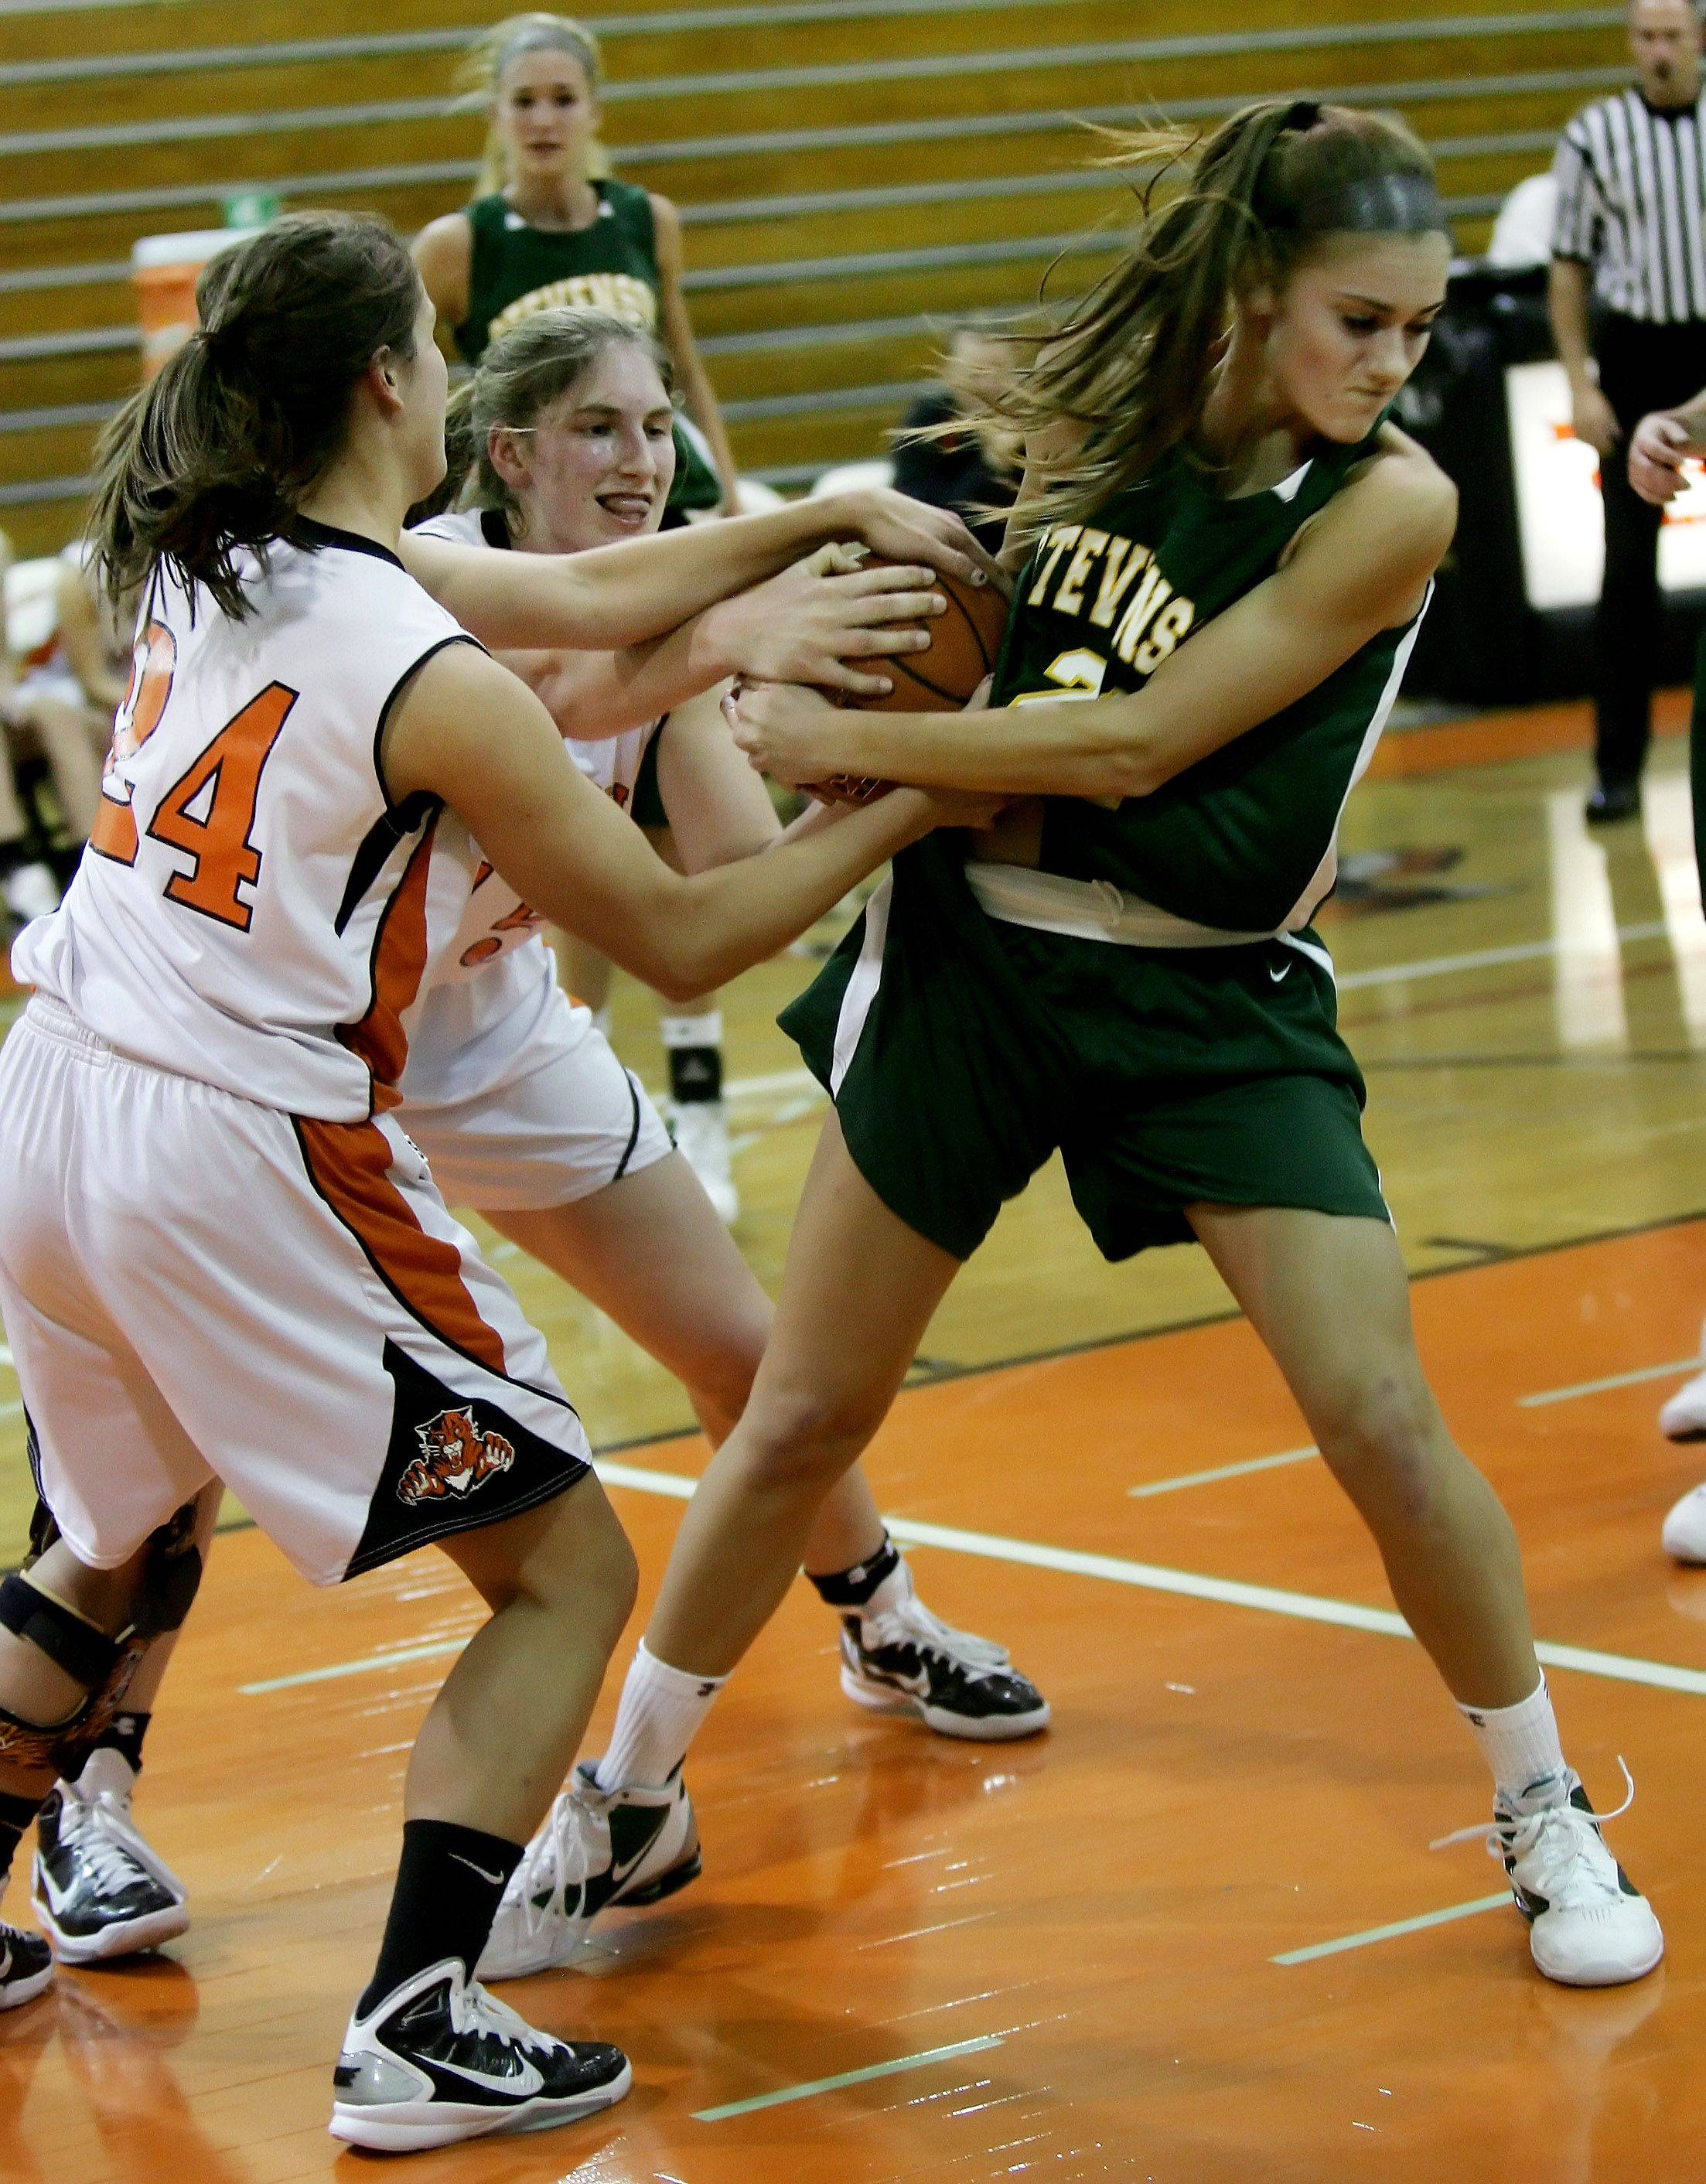 Libertyville's Kaca Savatic and Nicole Kruckman battle Stevenson player Ashley Niedermayer for a rebound during the girls basketball game Tuesday in Libertyville.